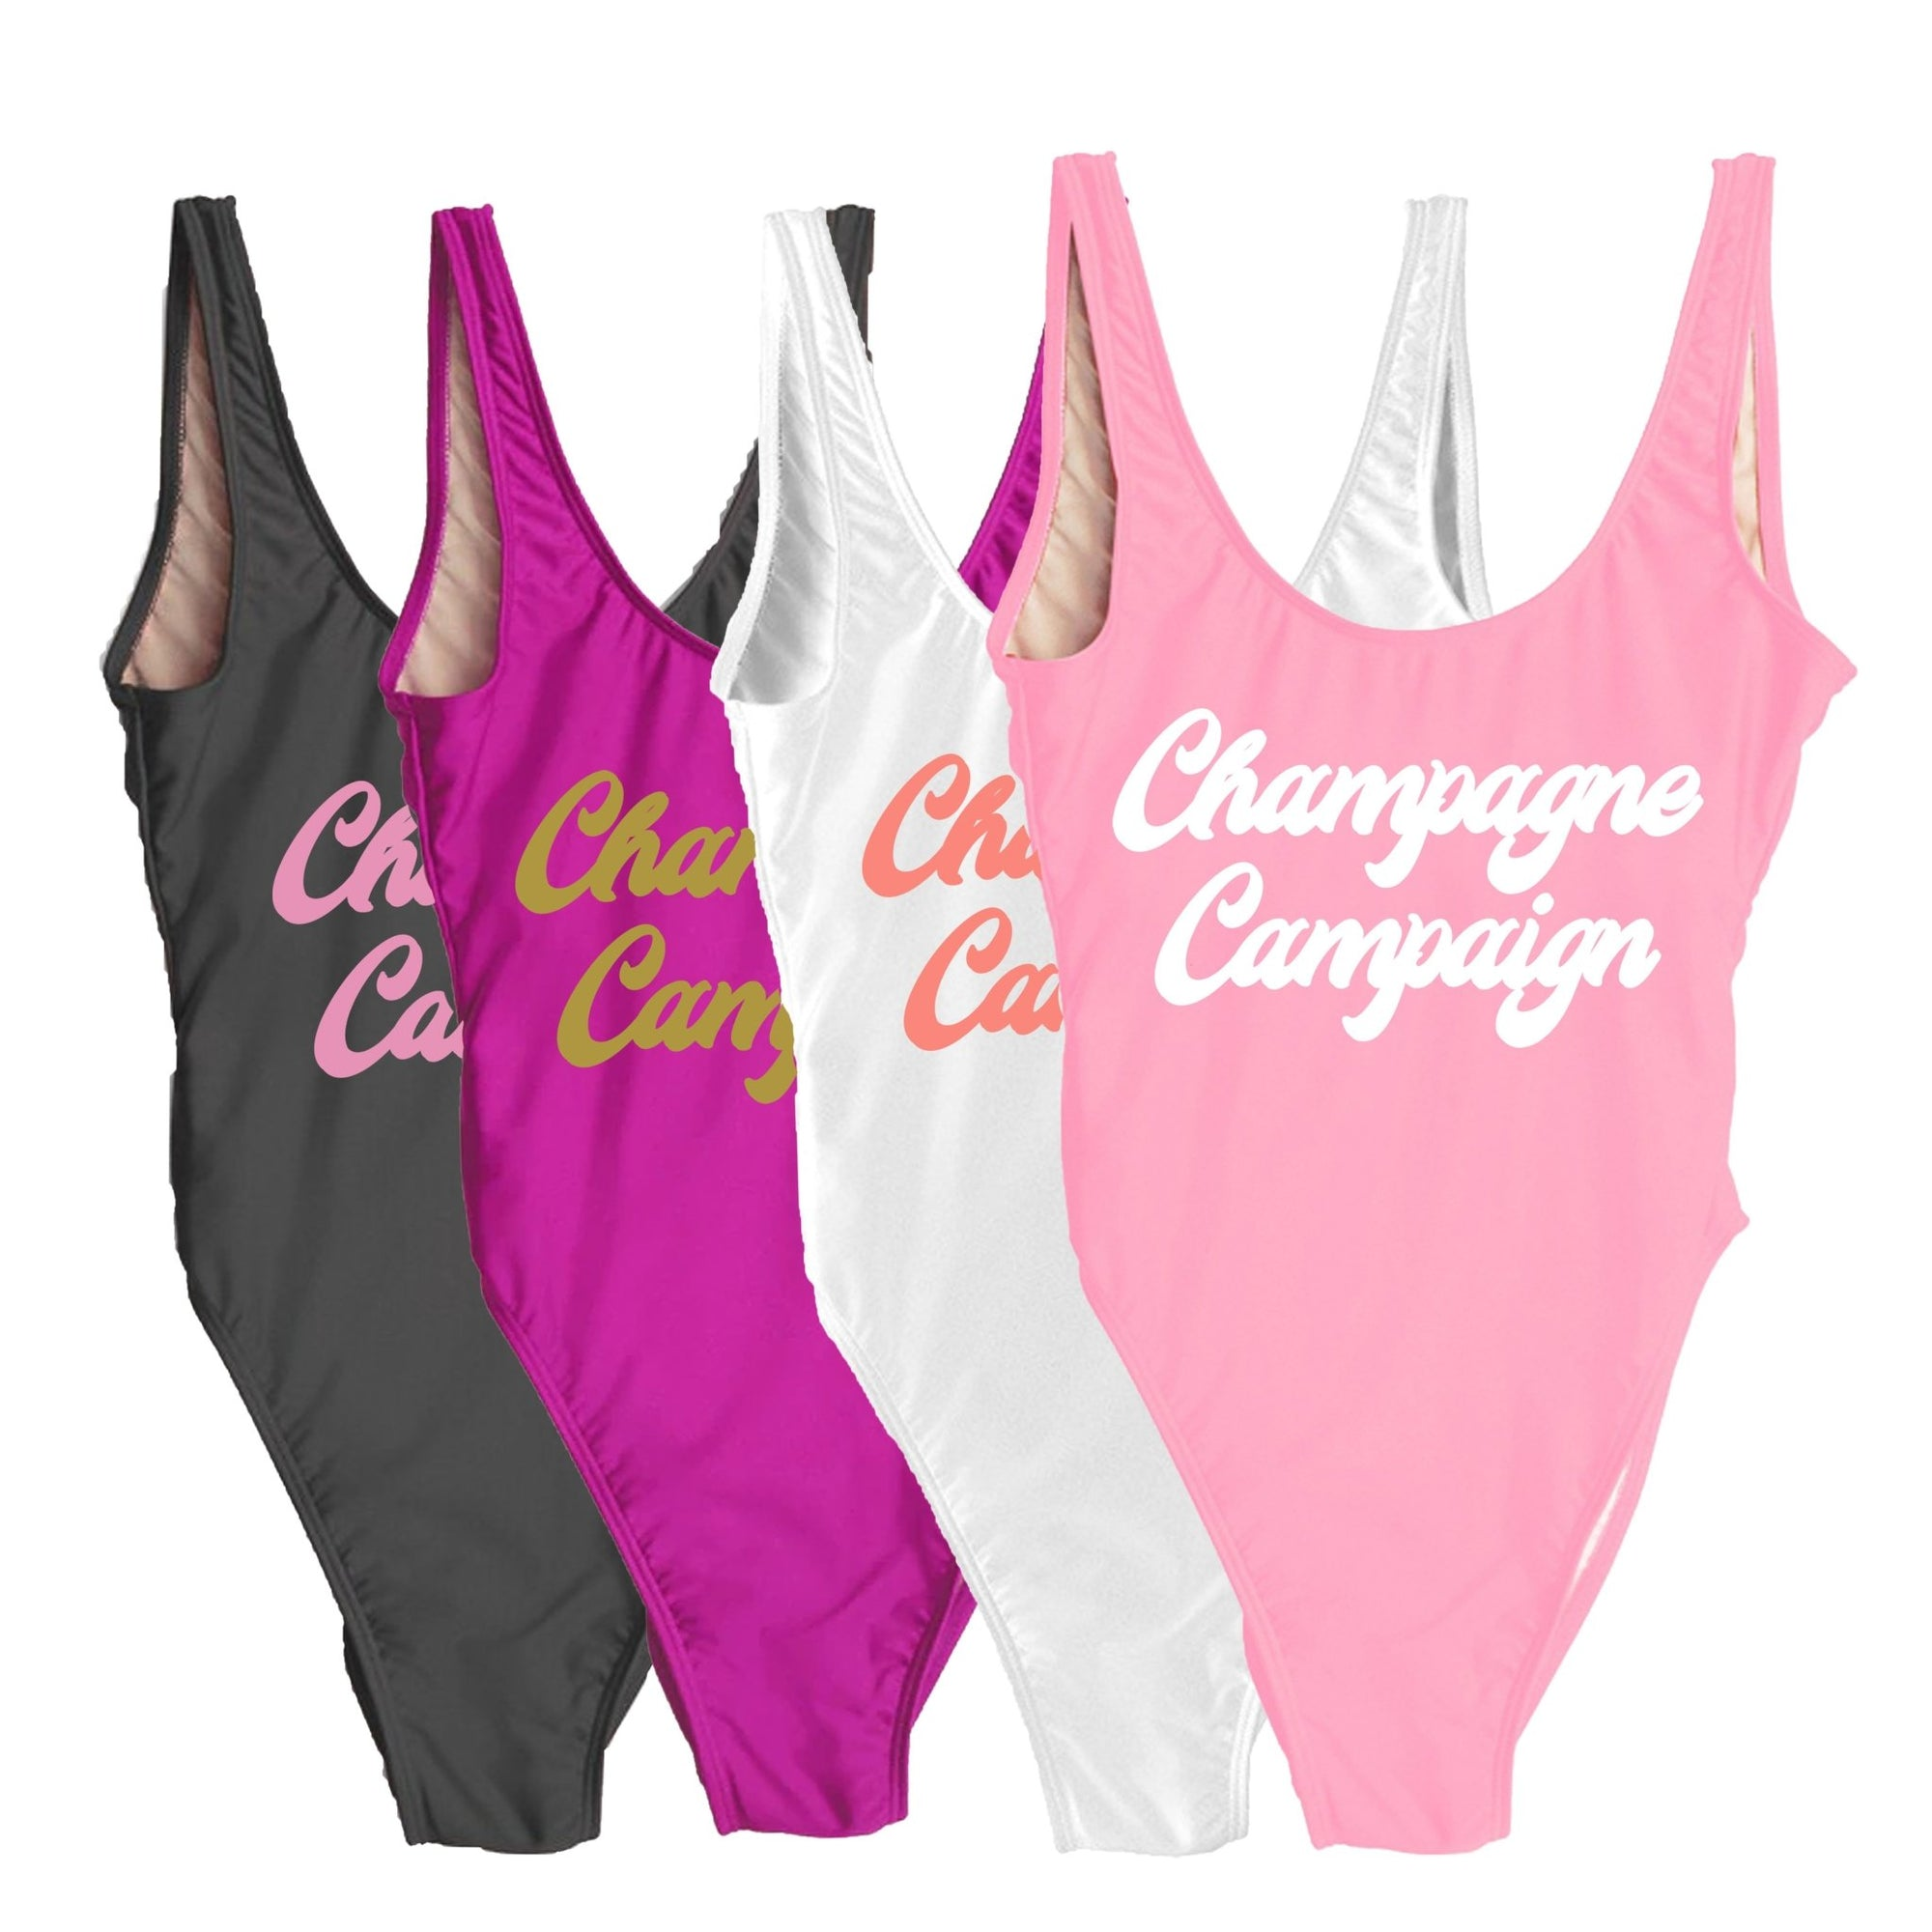 Champagne Campaign Swimsuit - Sprinkled With Pink #bachelorette #custom #gifts